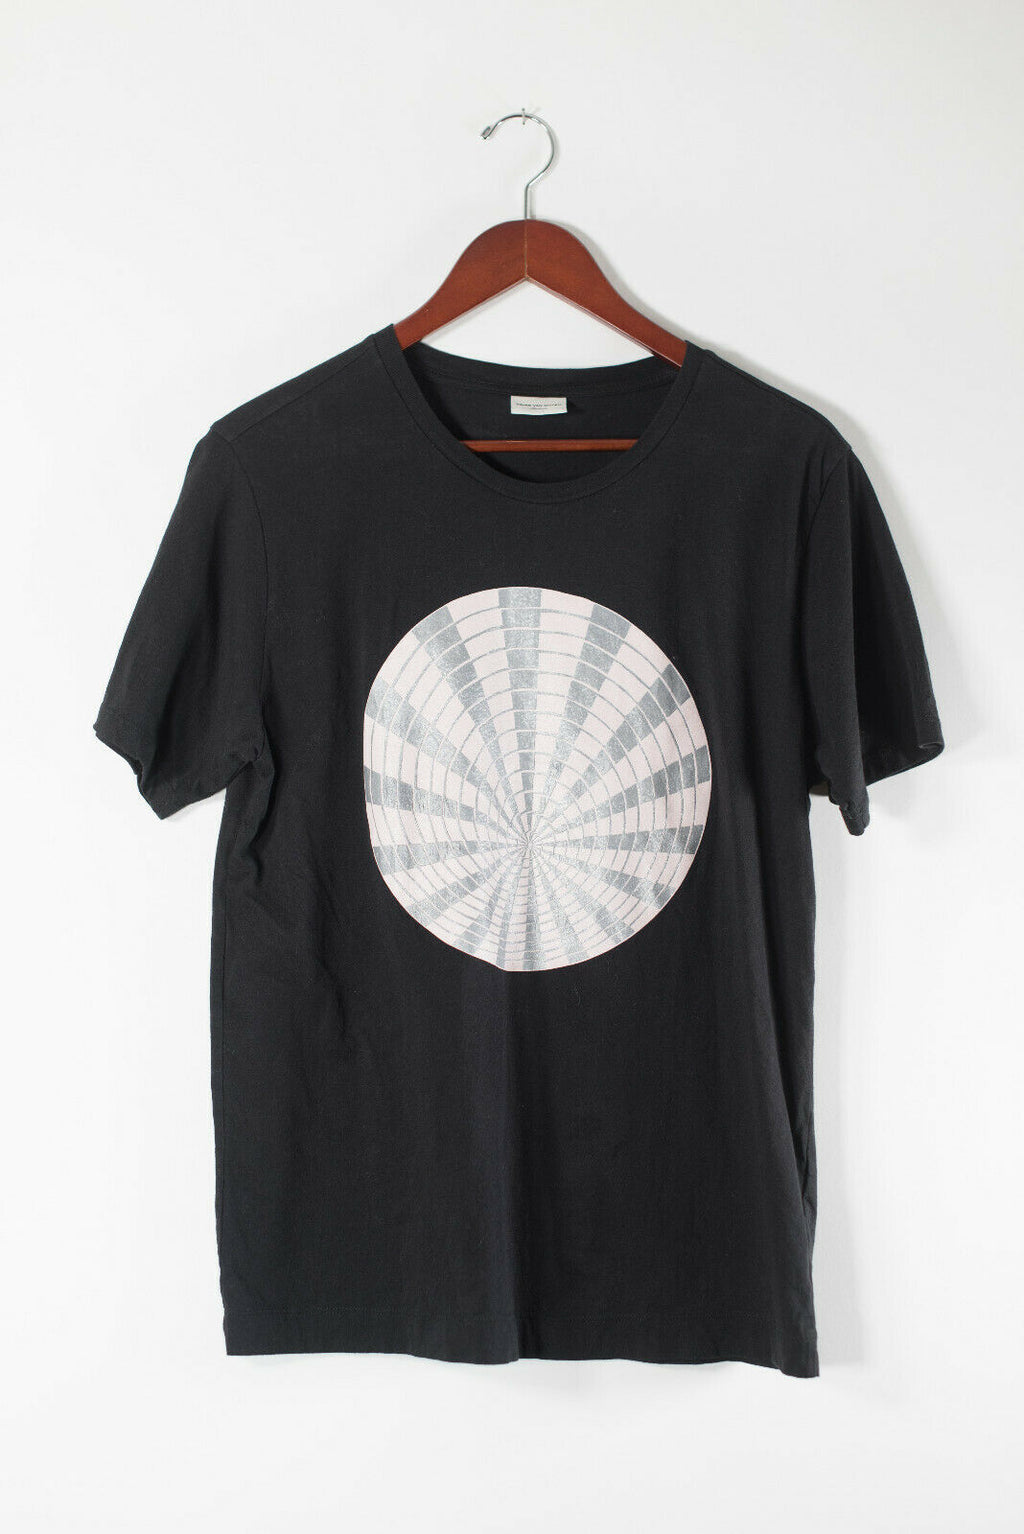 Dries Van Noten Medium Black Pink Spiral Graphic Tee